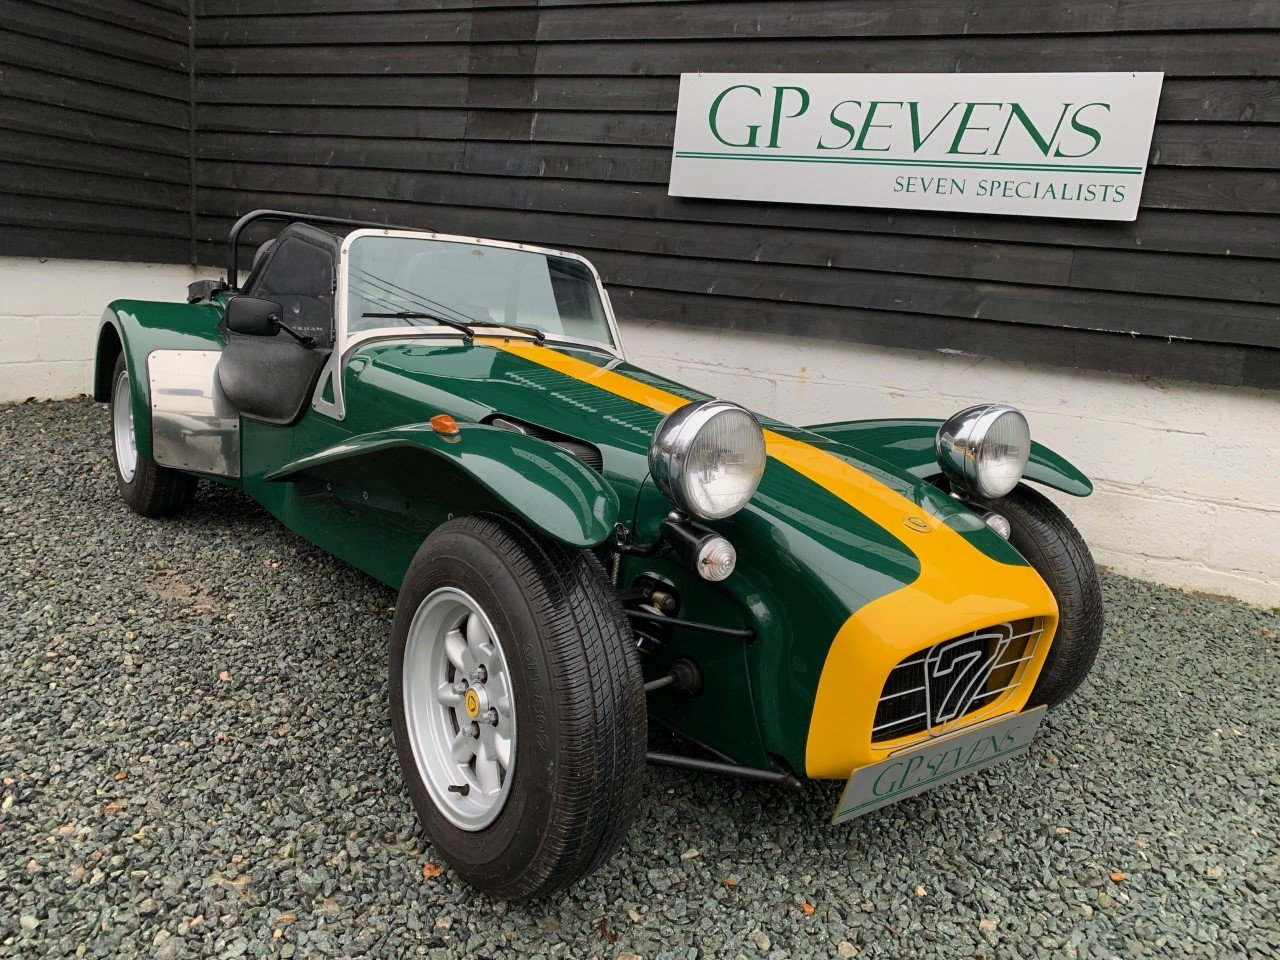 1998 Caterham Classic 1.6 VX Vauxhall 100bhp 5 speed For Sale (picture 1 of 6)